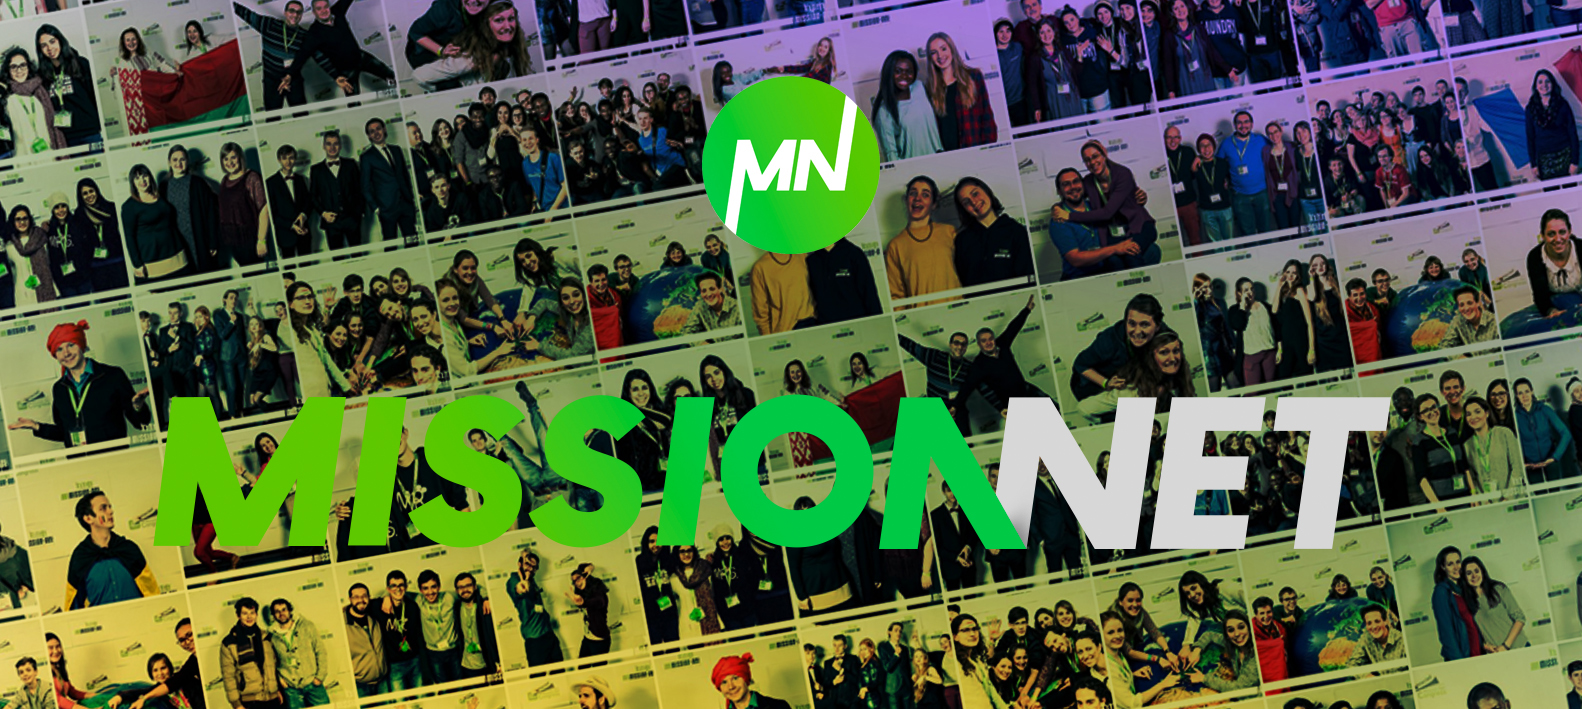 Mission-Net Congress invites you!